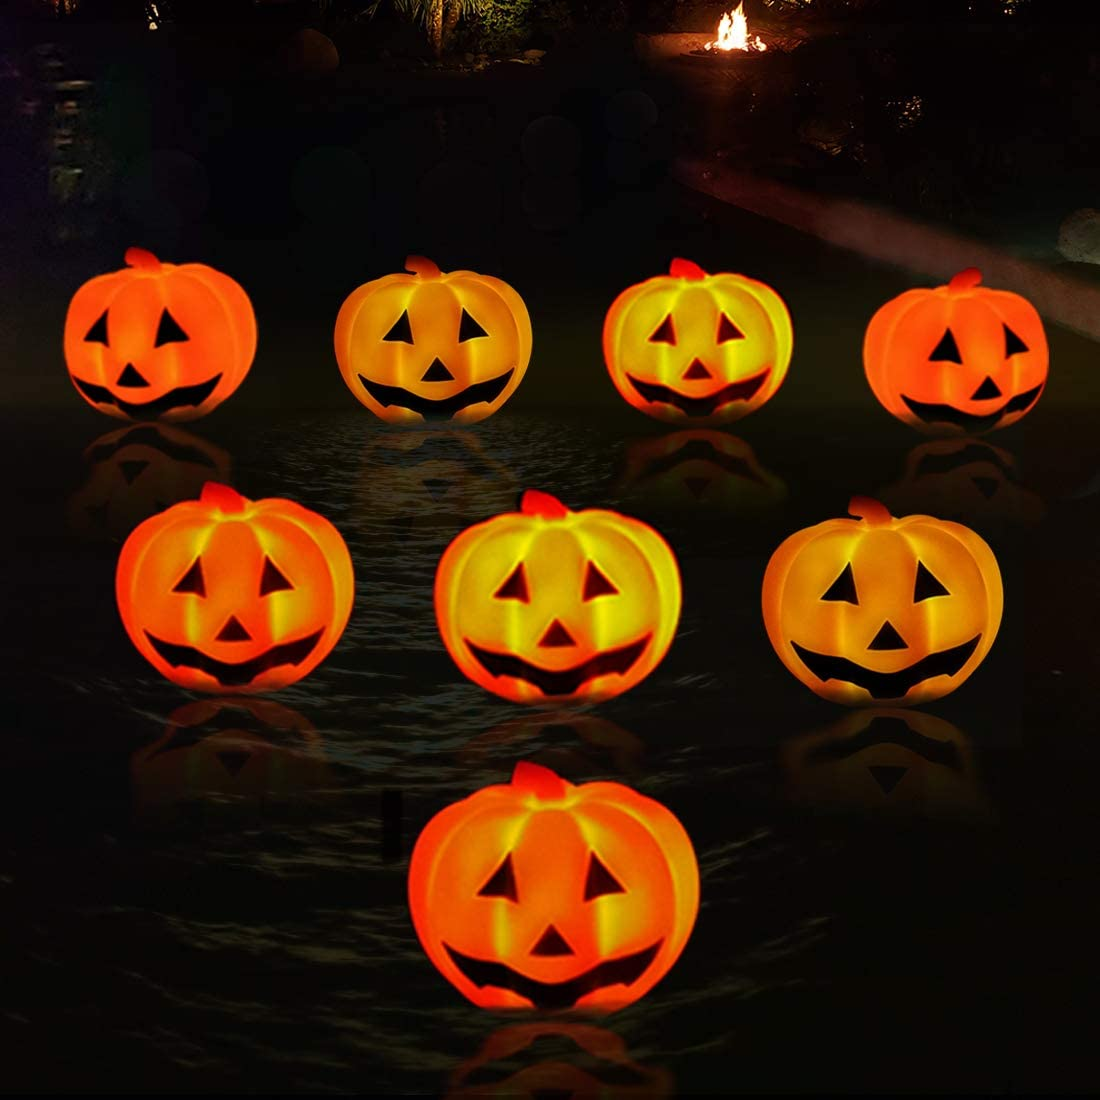 KingSom Pumpkin Night Light, IP67 Waterproof Floating Pool Lights, Flashing Color Changing LED Lamp, Battery Powered Halloween Pumpkin Decor Light for Outdoor/Indoor,Pond,Garden,Bathtub, Party(8PCS)